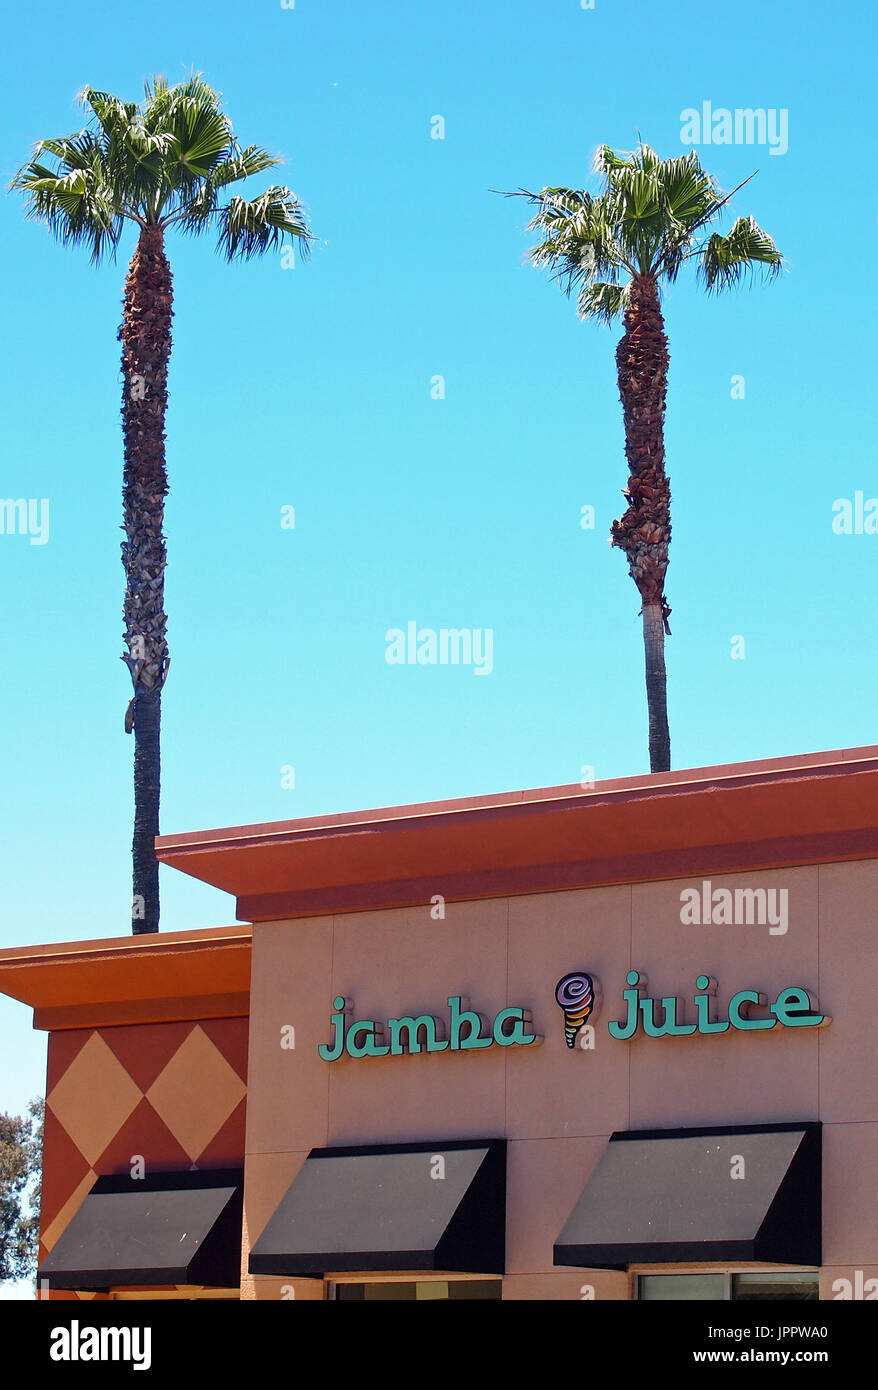 Jamba Juice High Resolution Stock Photography And Images Alamy